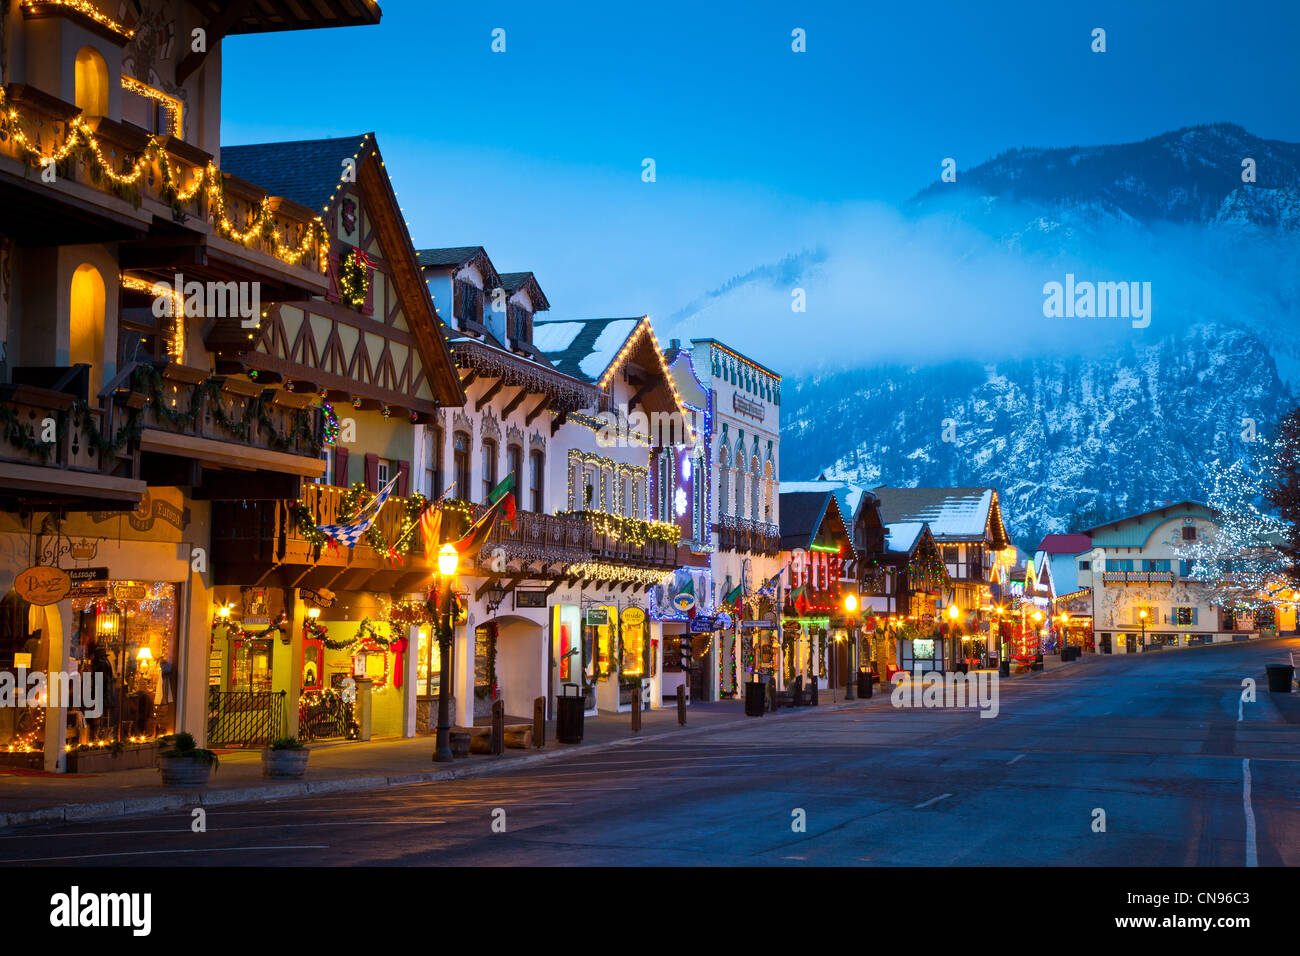 Leavenworth Wa Christmas Tree Lighting Decoratingspecial Com & Awesome Picture of Leavenworth Christmas Lighting Festival ... azcodes.com